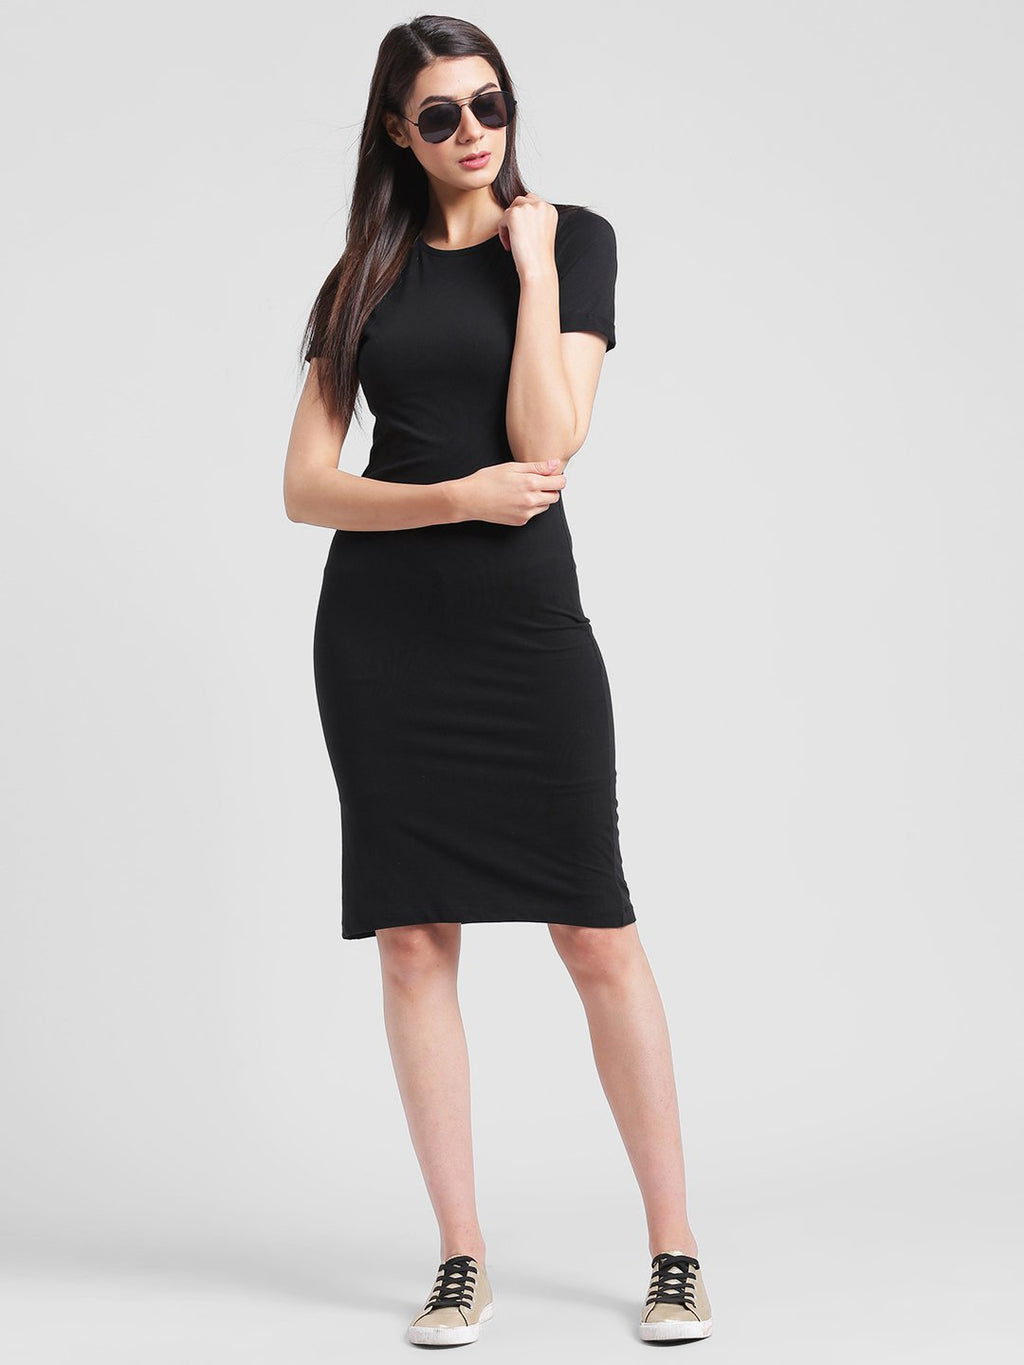 RIGO Solid Black Knee length Bodycon dress